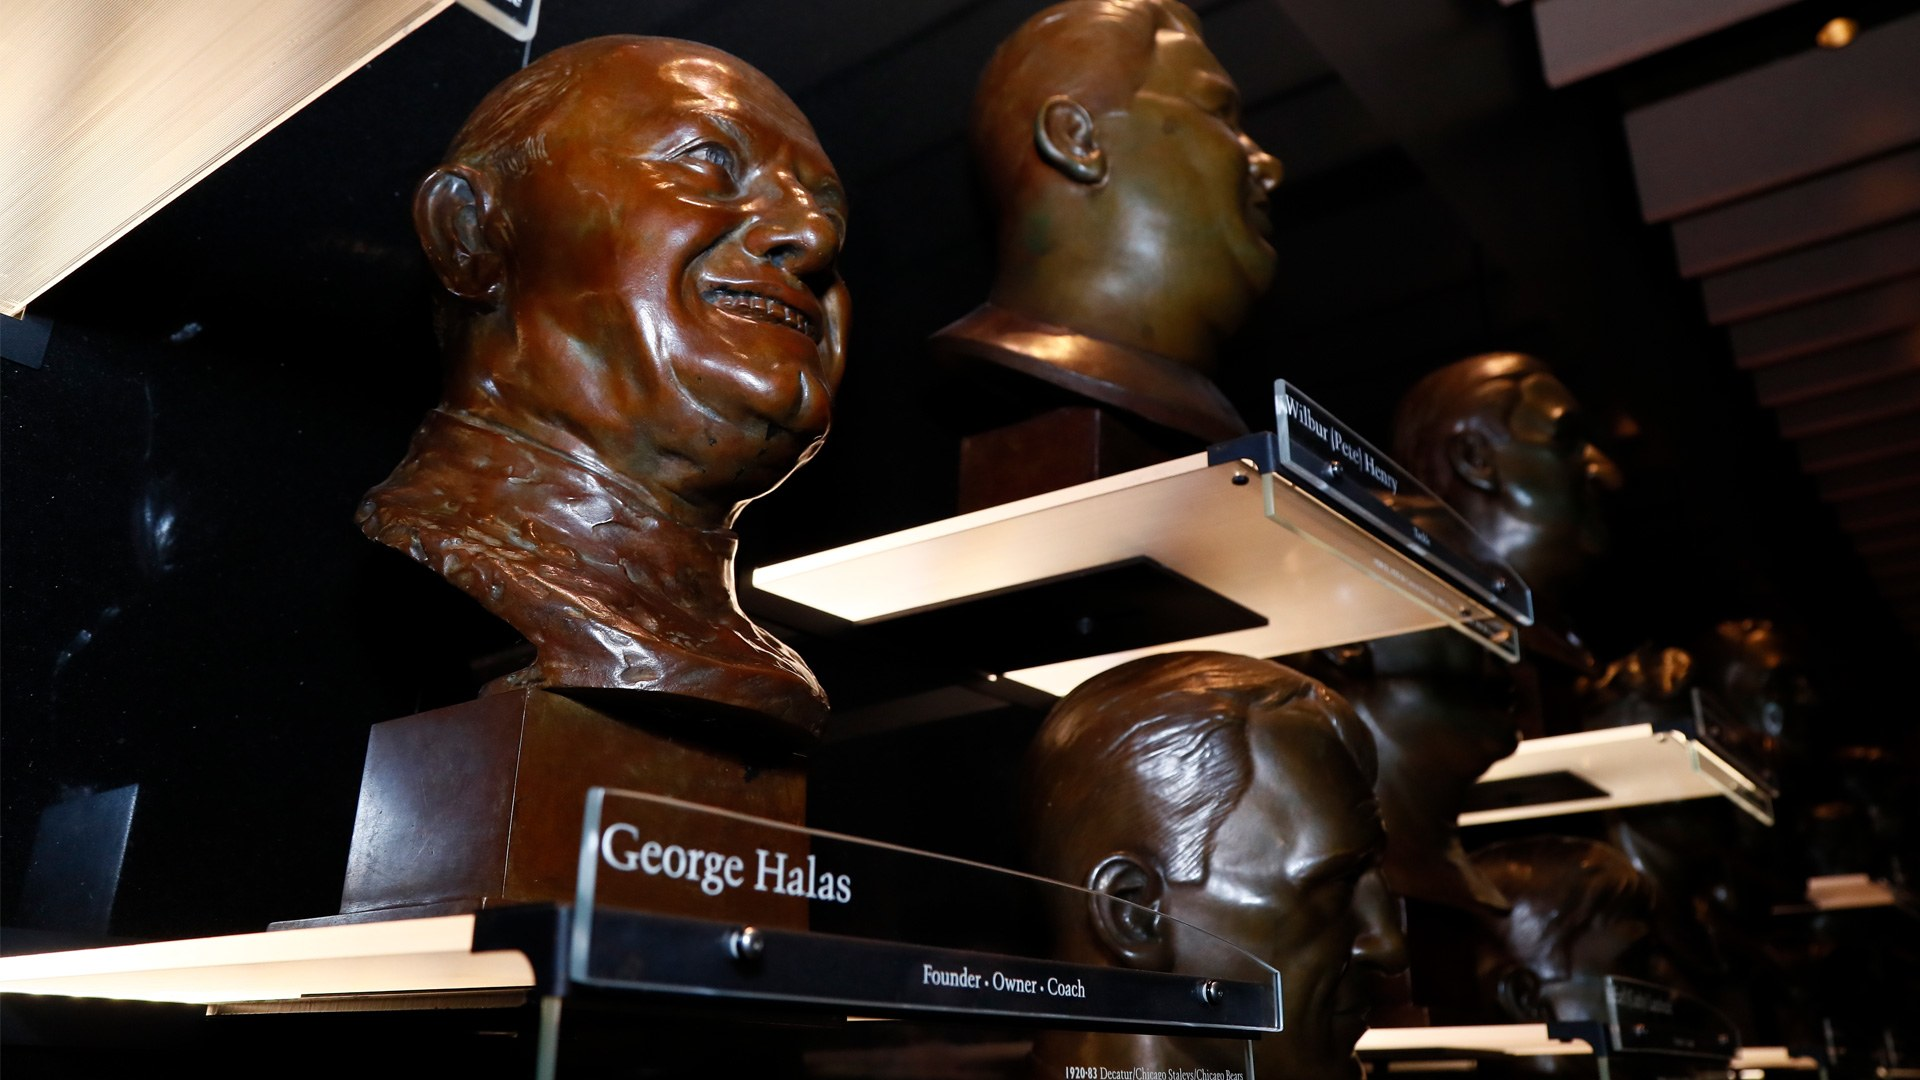 Hall of Fame Busts